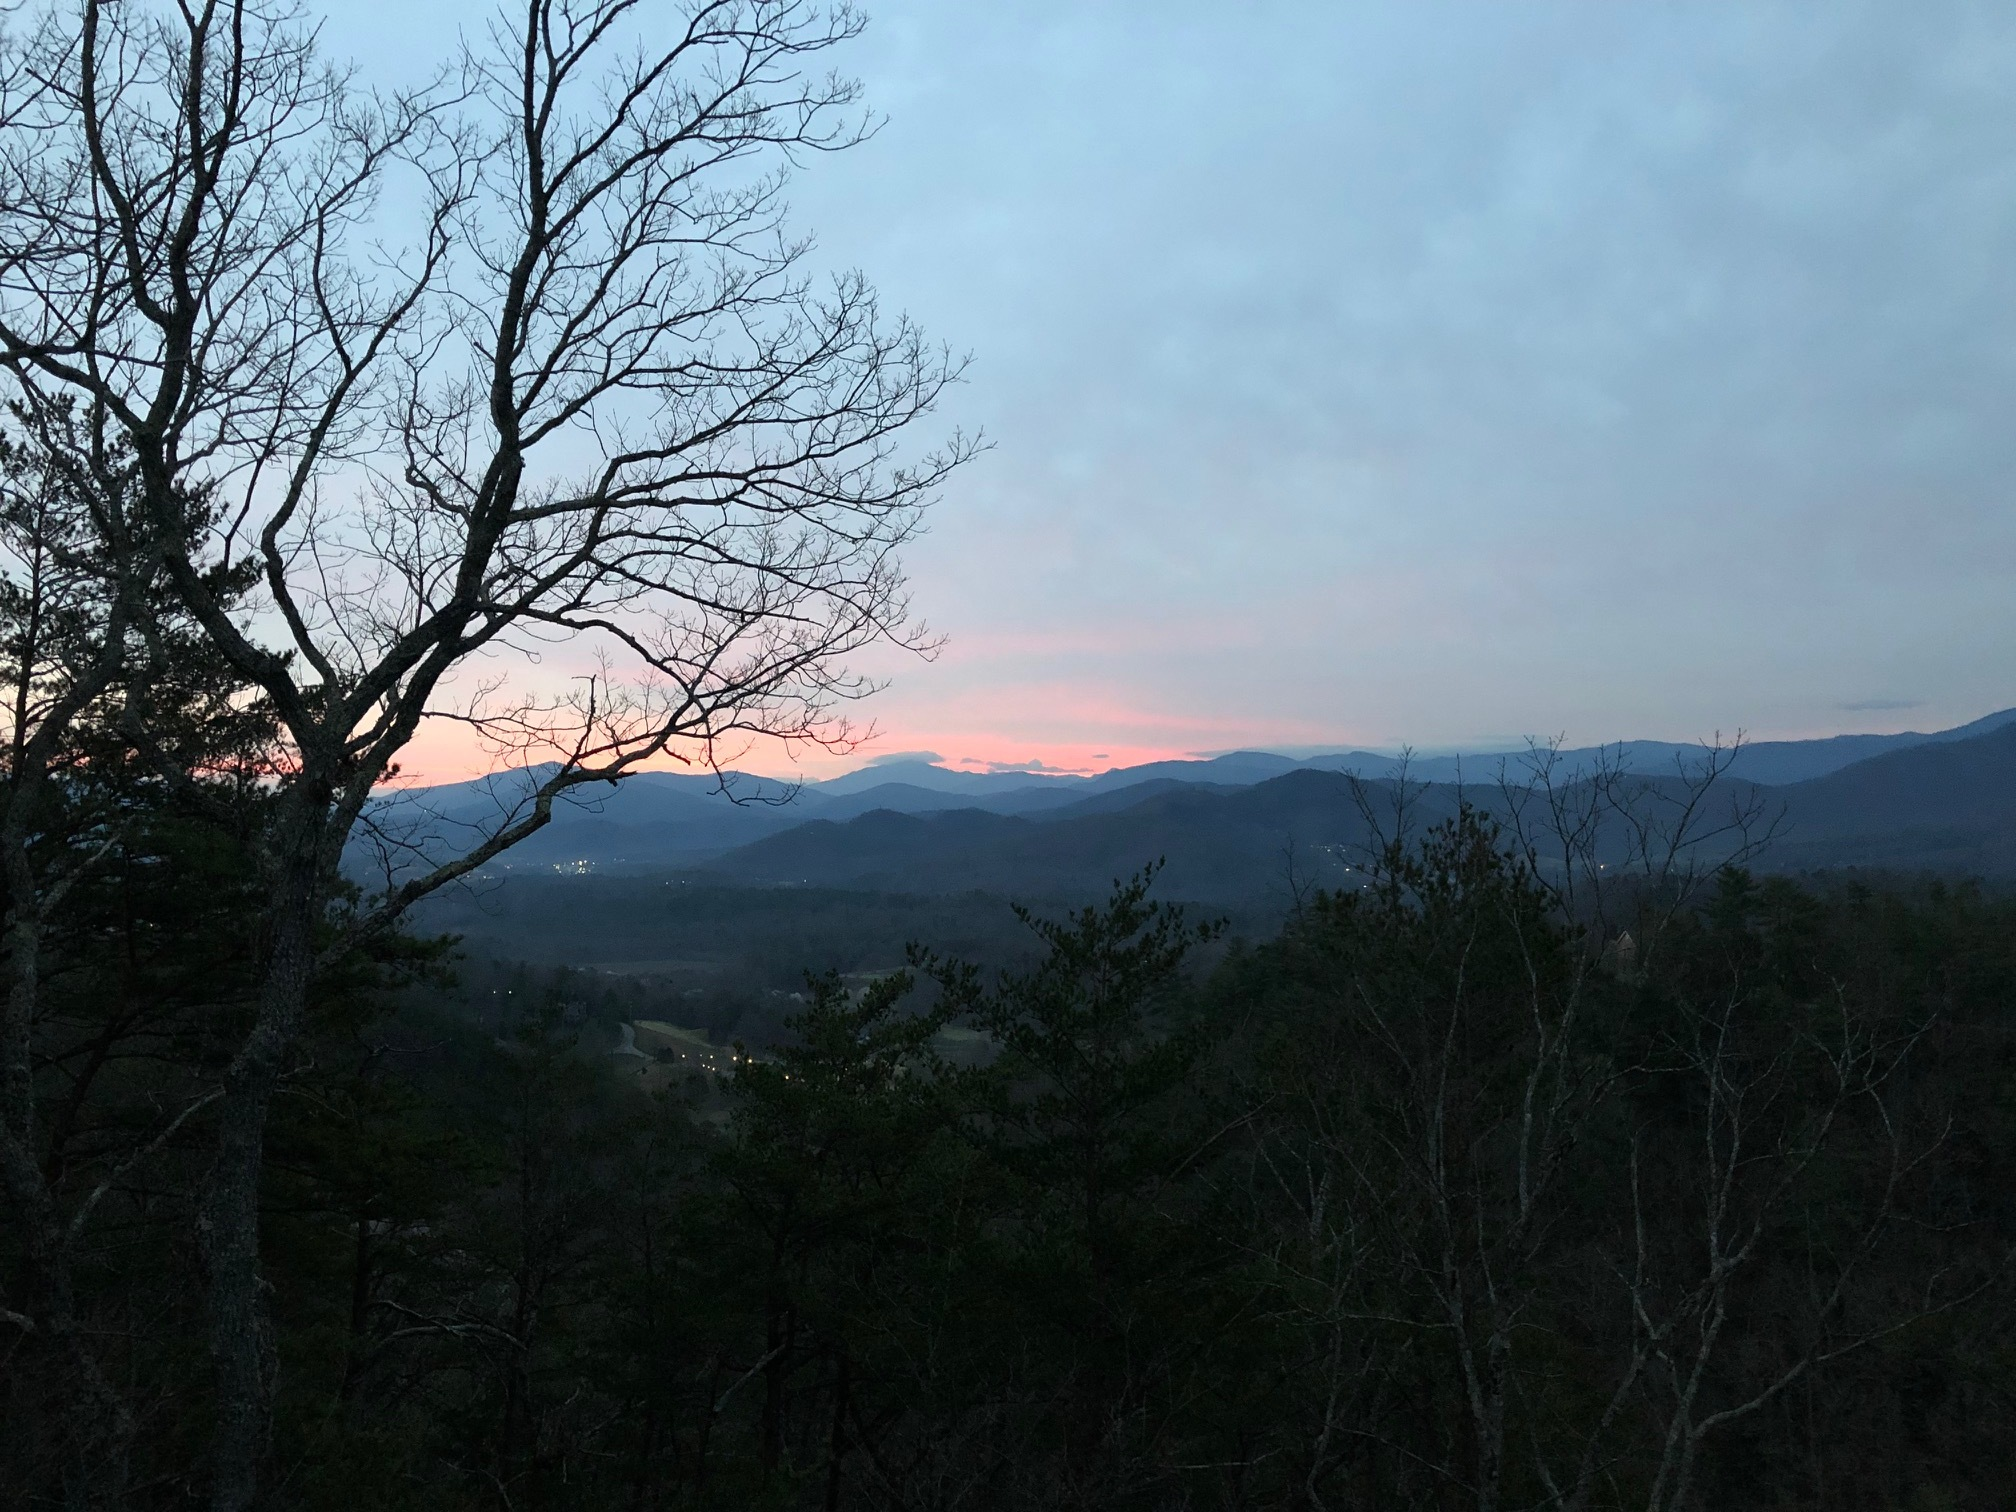 View from the deck in Townsend, looking at the Great Smoky Mountains.